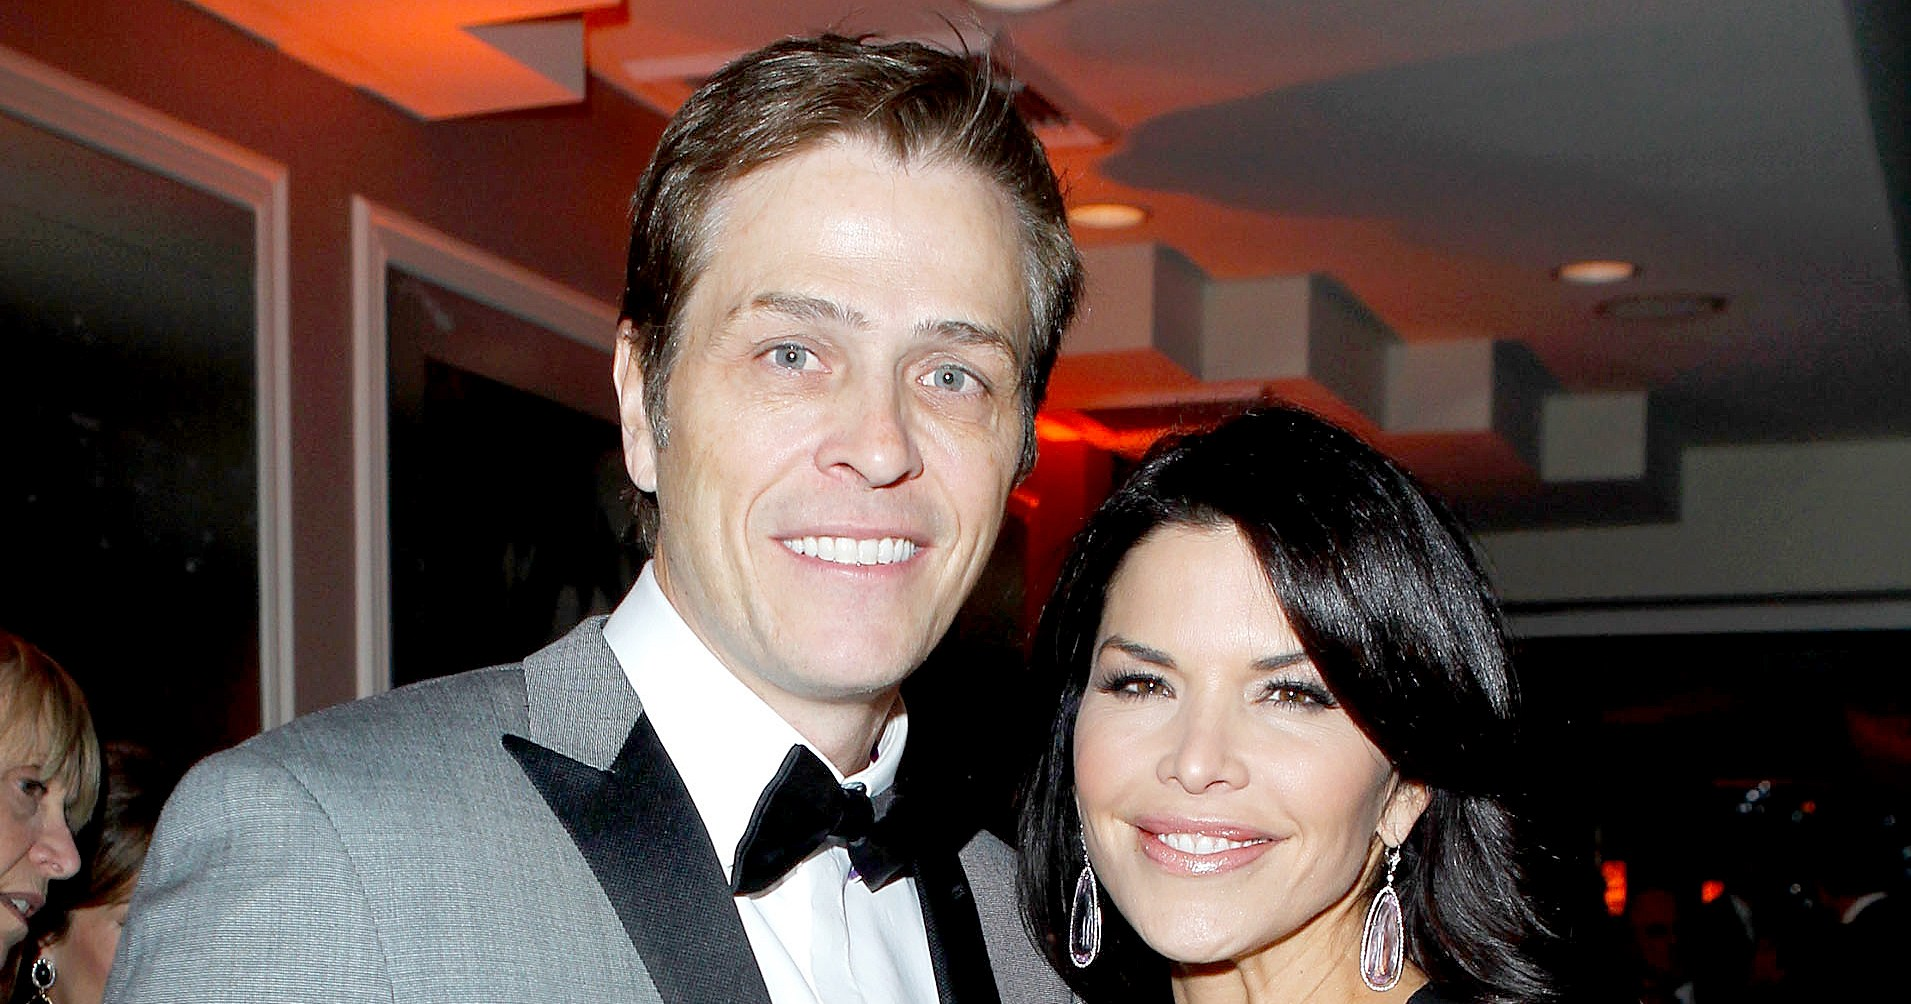 Lauren Sanchez, Patrick Whitesell Haven't Been 'Solid for a While'